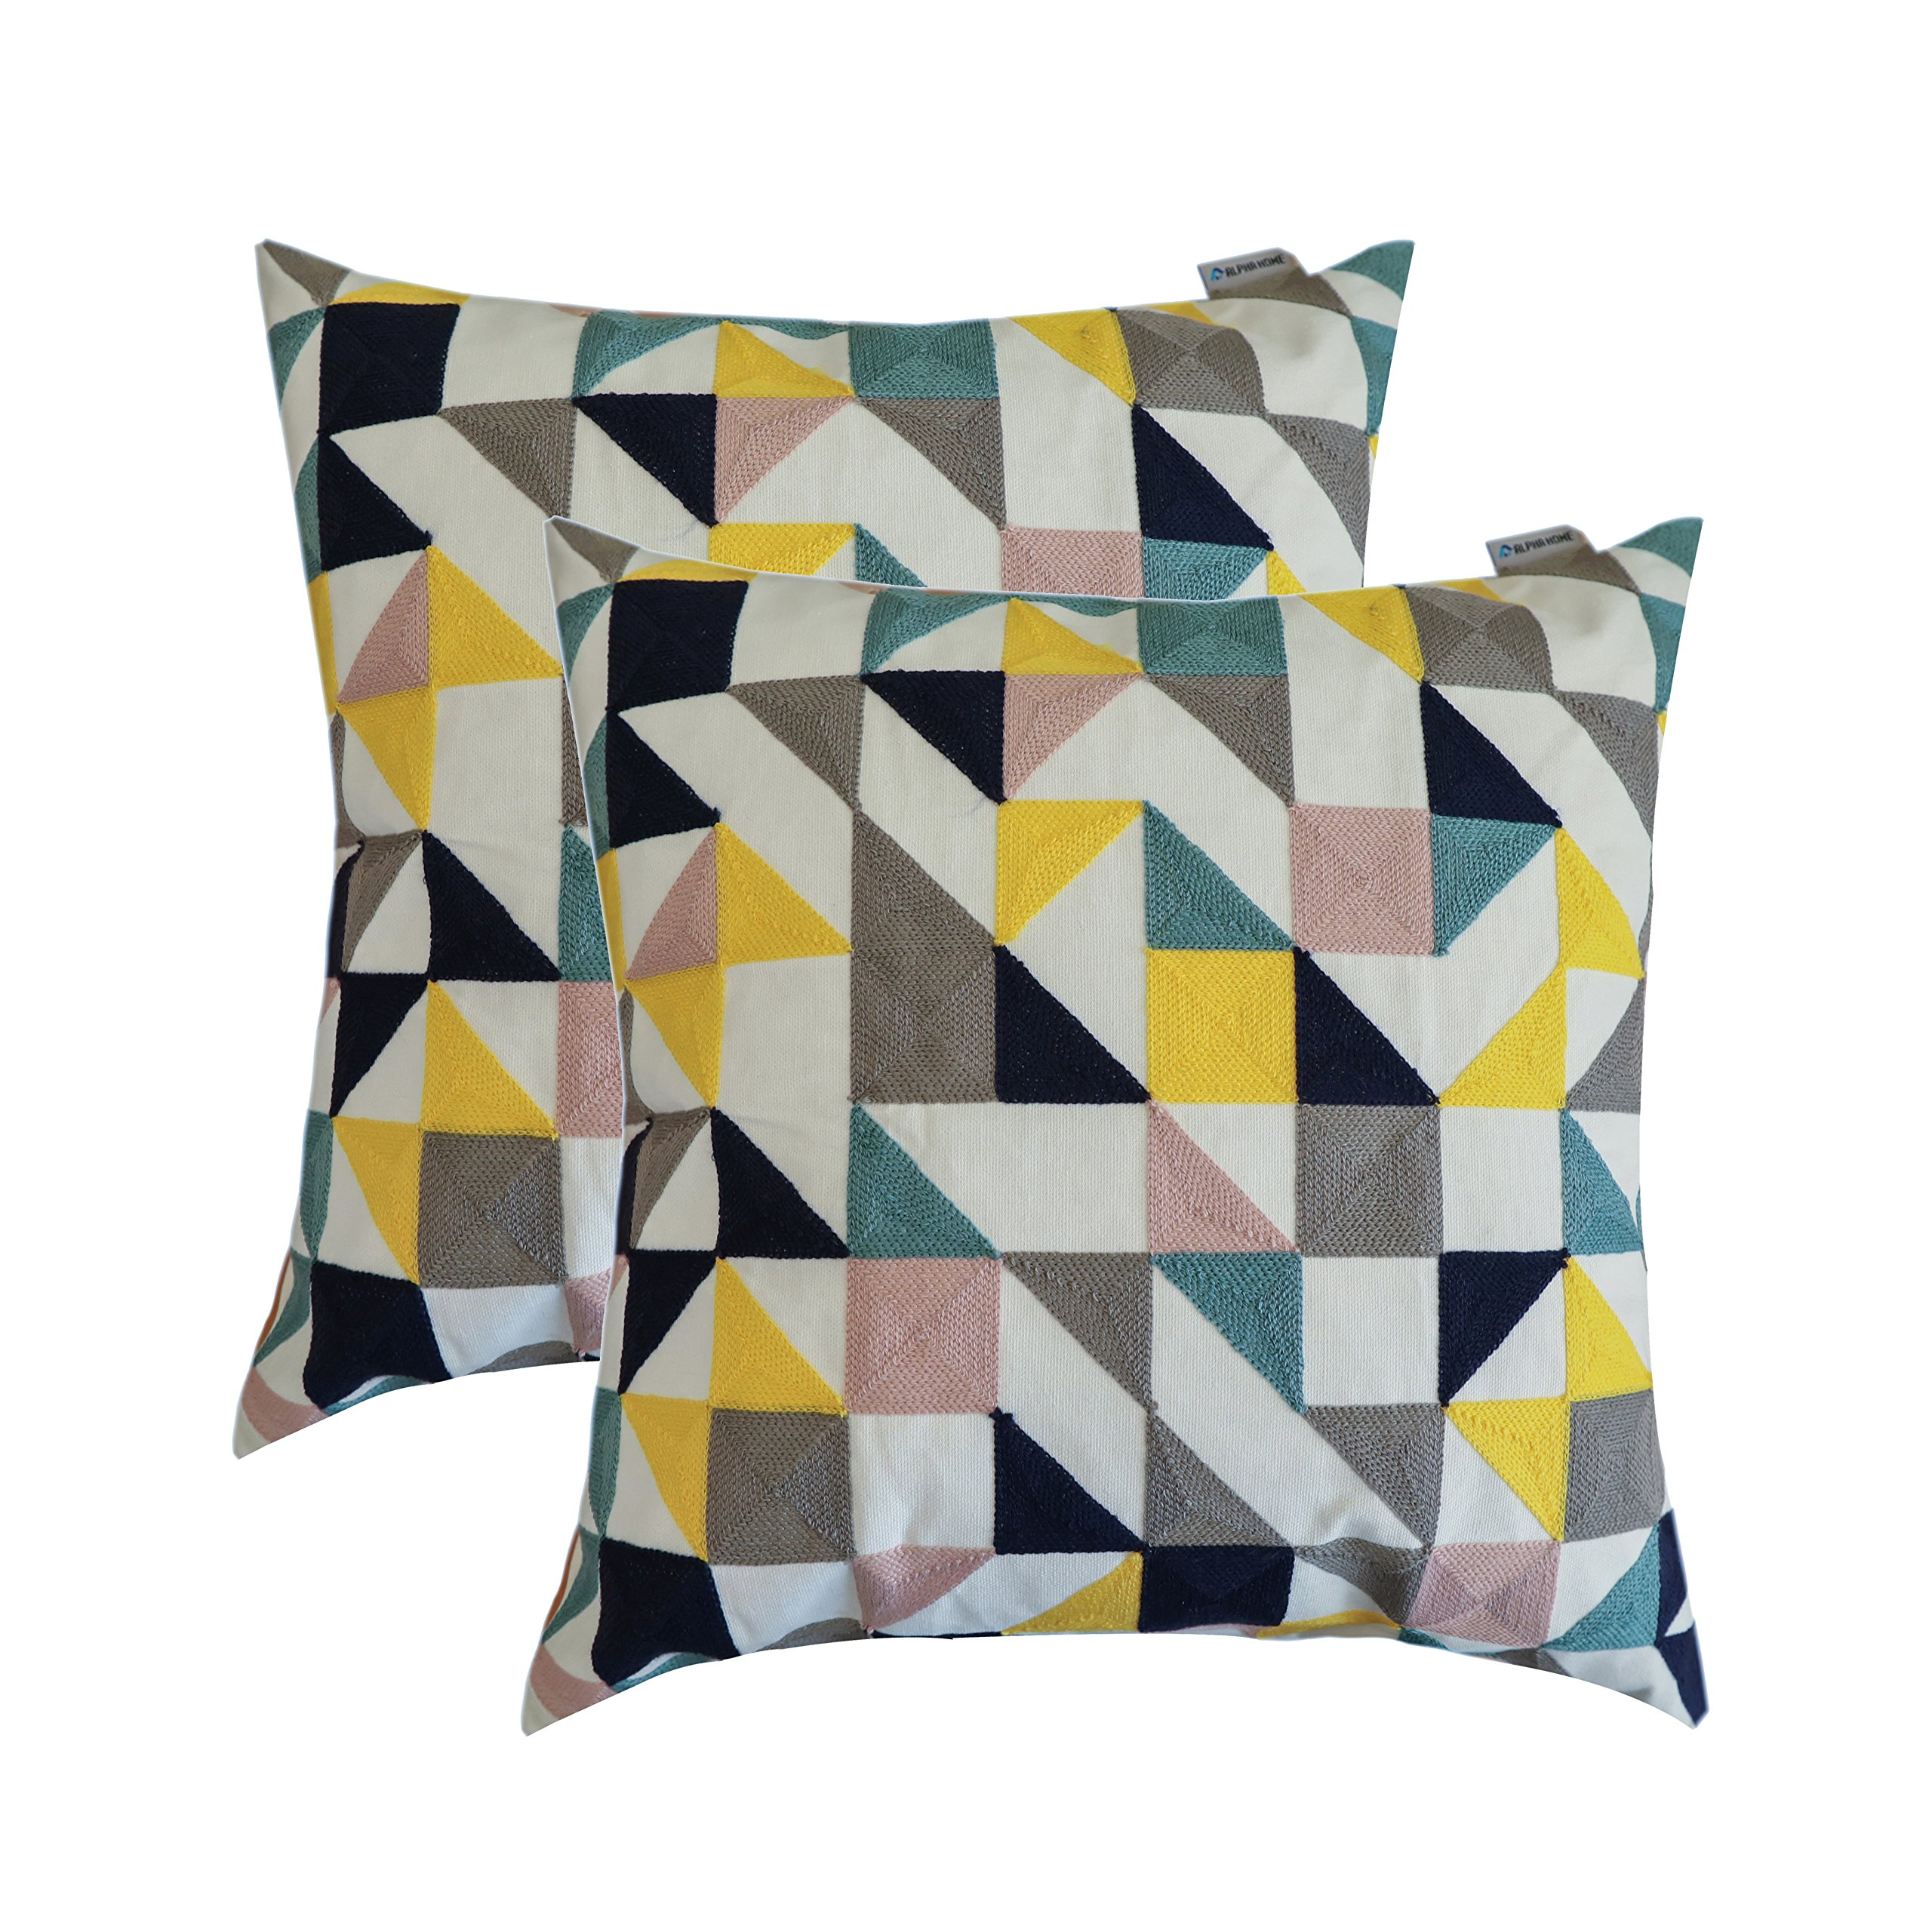 ALPHA HOME Embroidered Throw Pillow Covers Decorative Cushion Covers 18 x 18 inch, Set of 2, Geometric